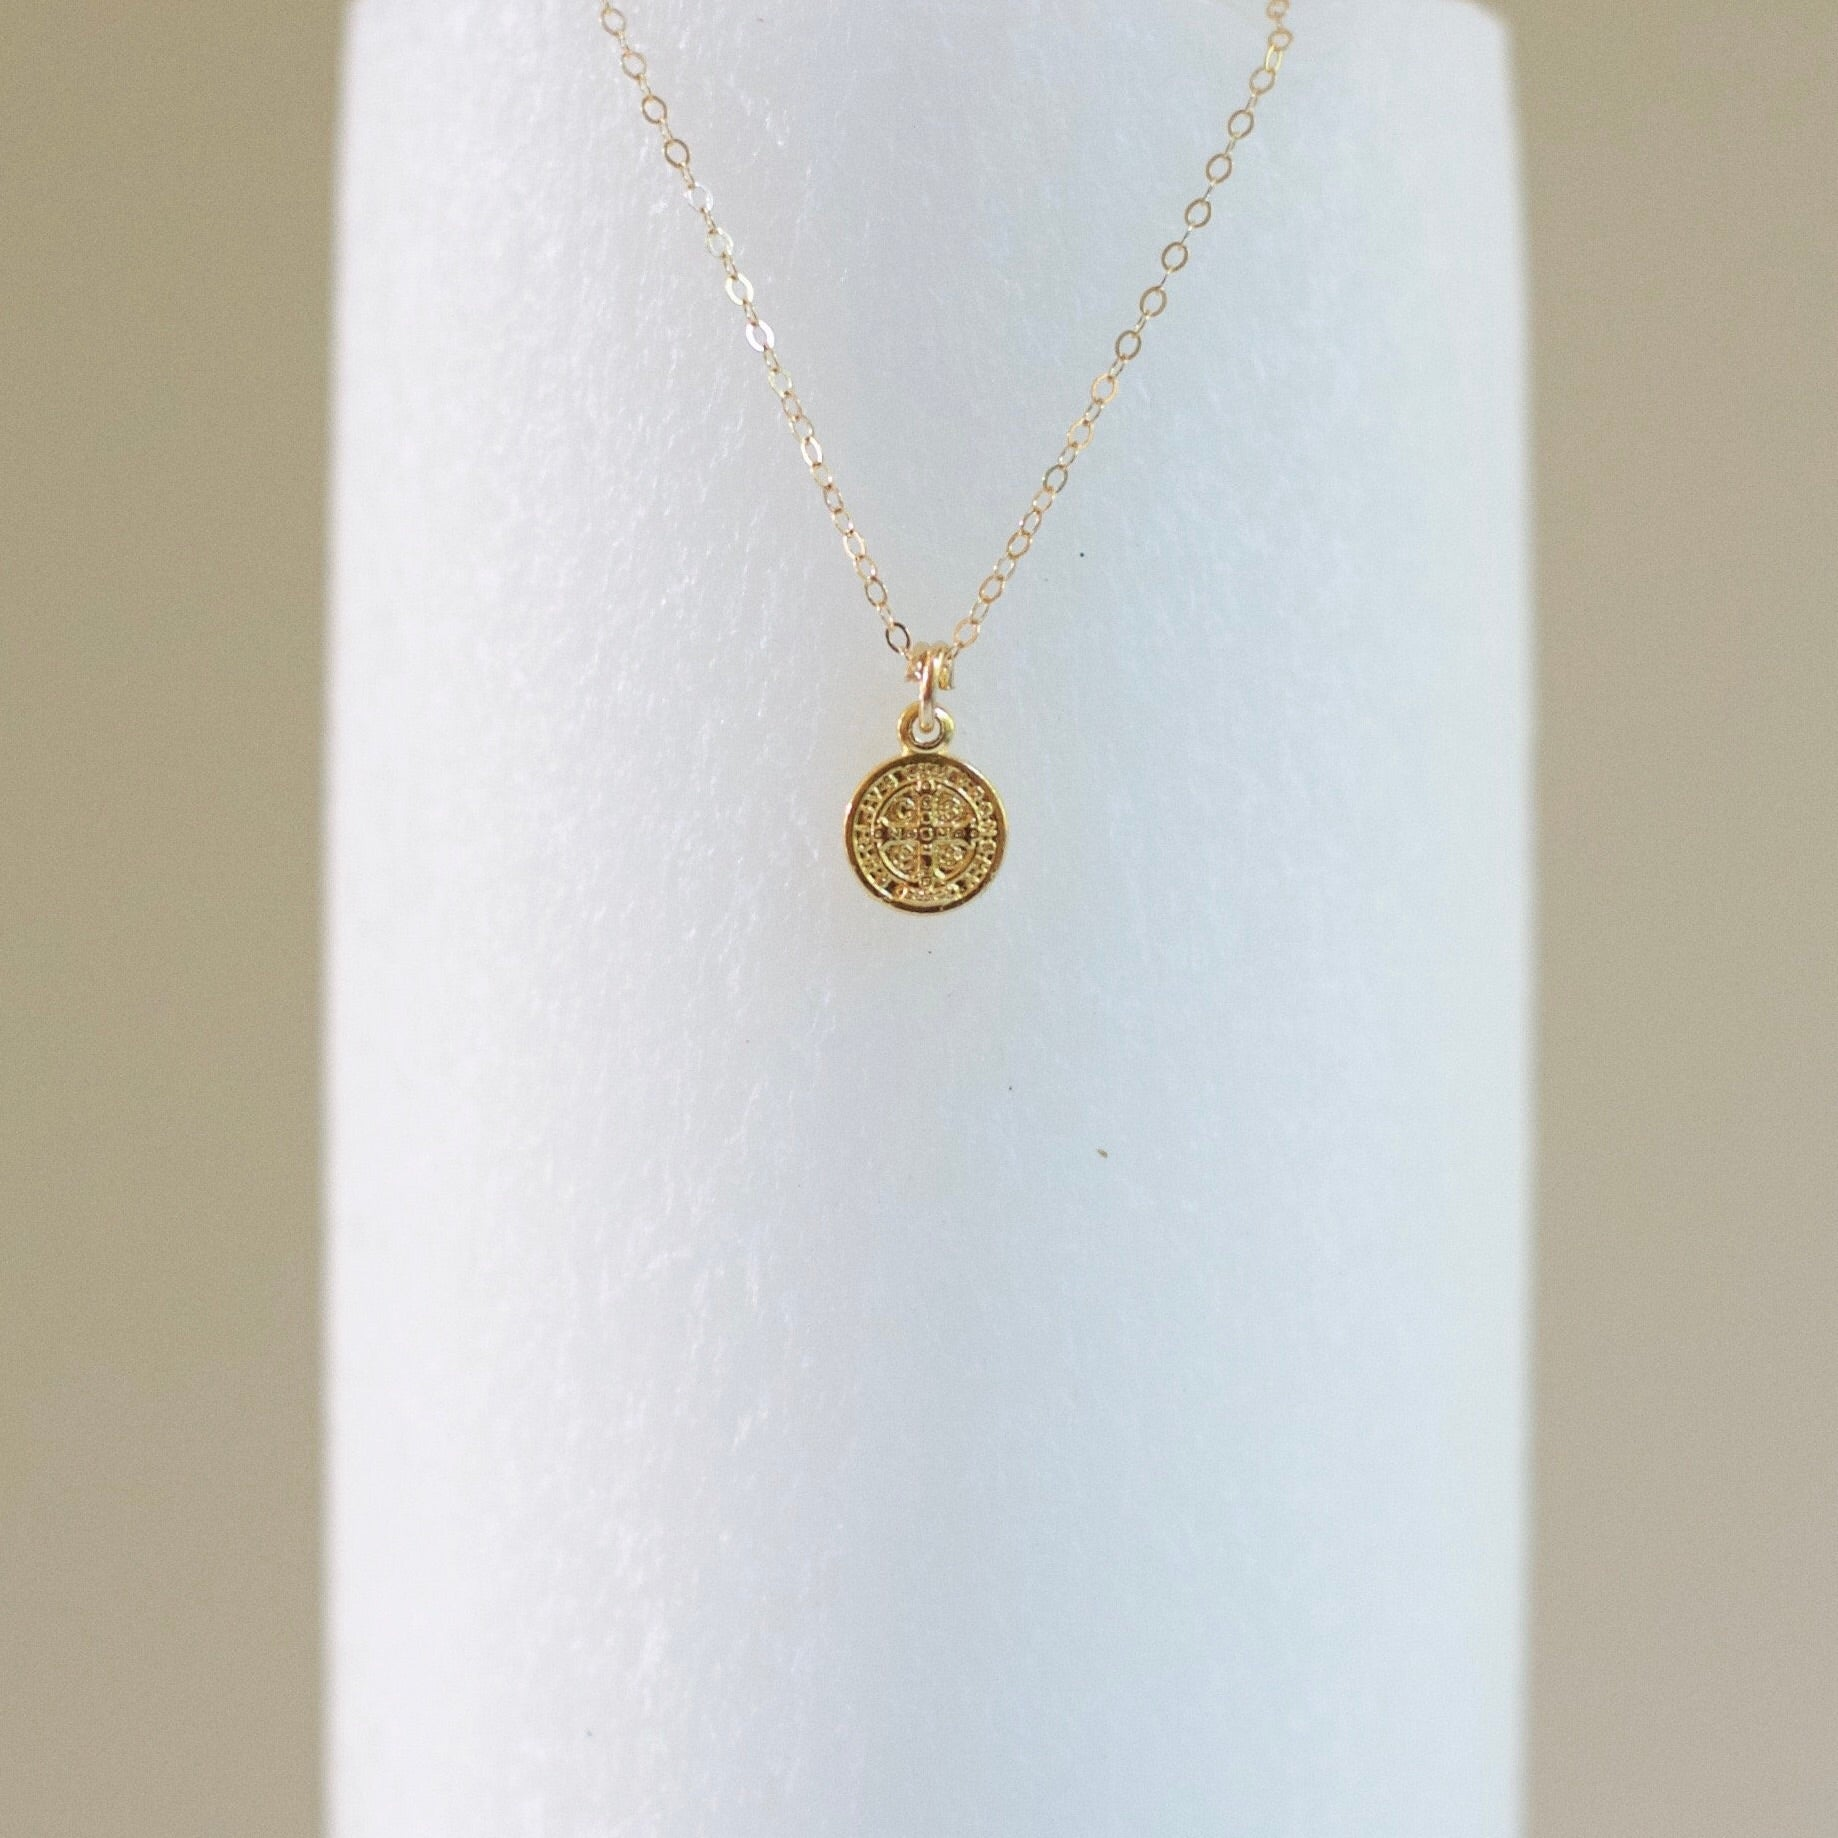 St. Benedict Necklace (14k gold-filled)